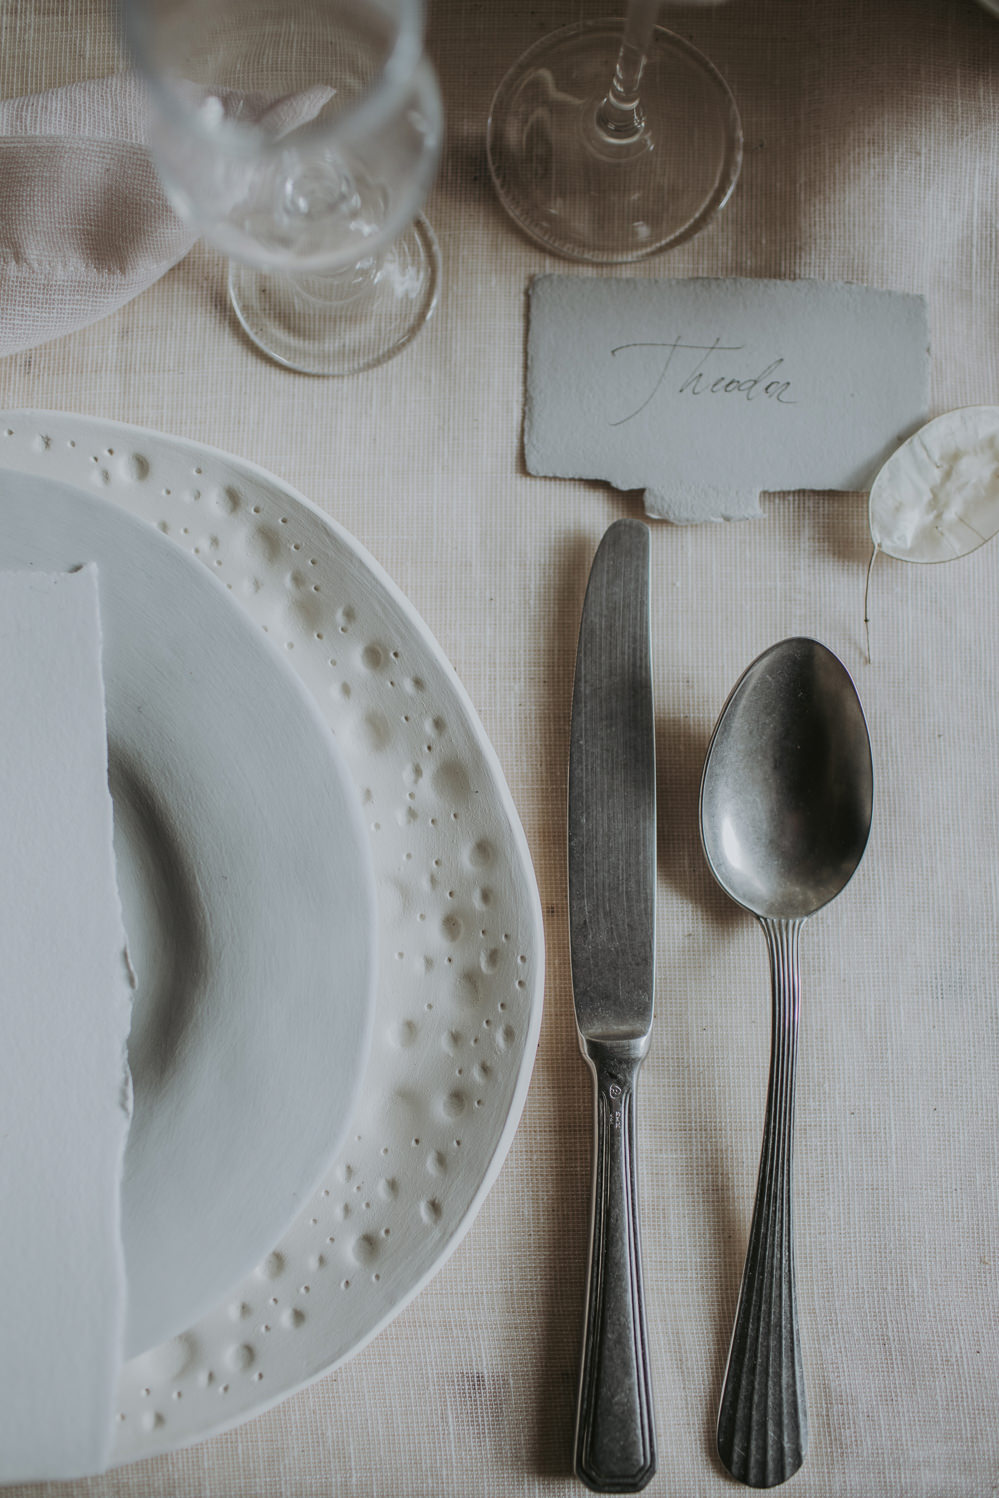 Place Setting Decor Menu Twig Plates Ceramic Tableware Napkin Natural Wild Neutrals Cutlery Place Tag Name Cave Wedding Ideas Vanessa Illi Photographer